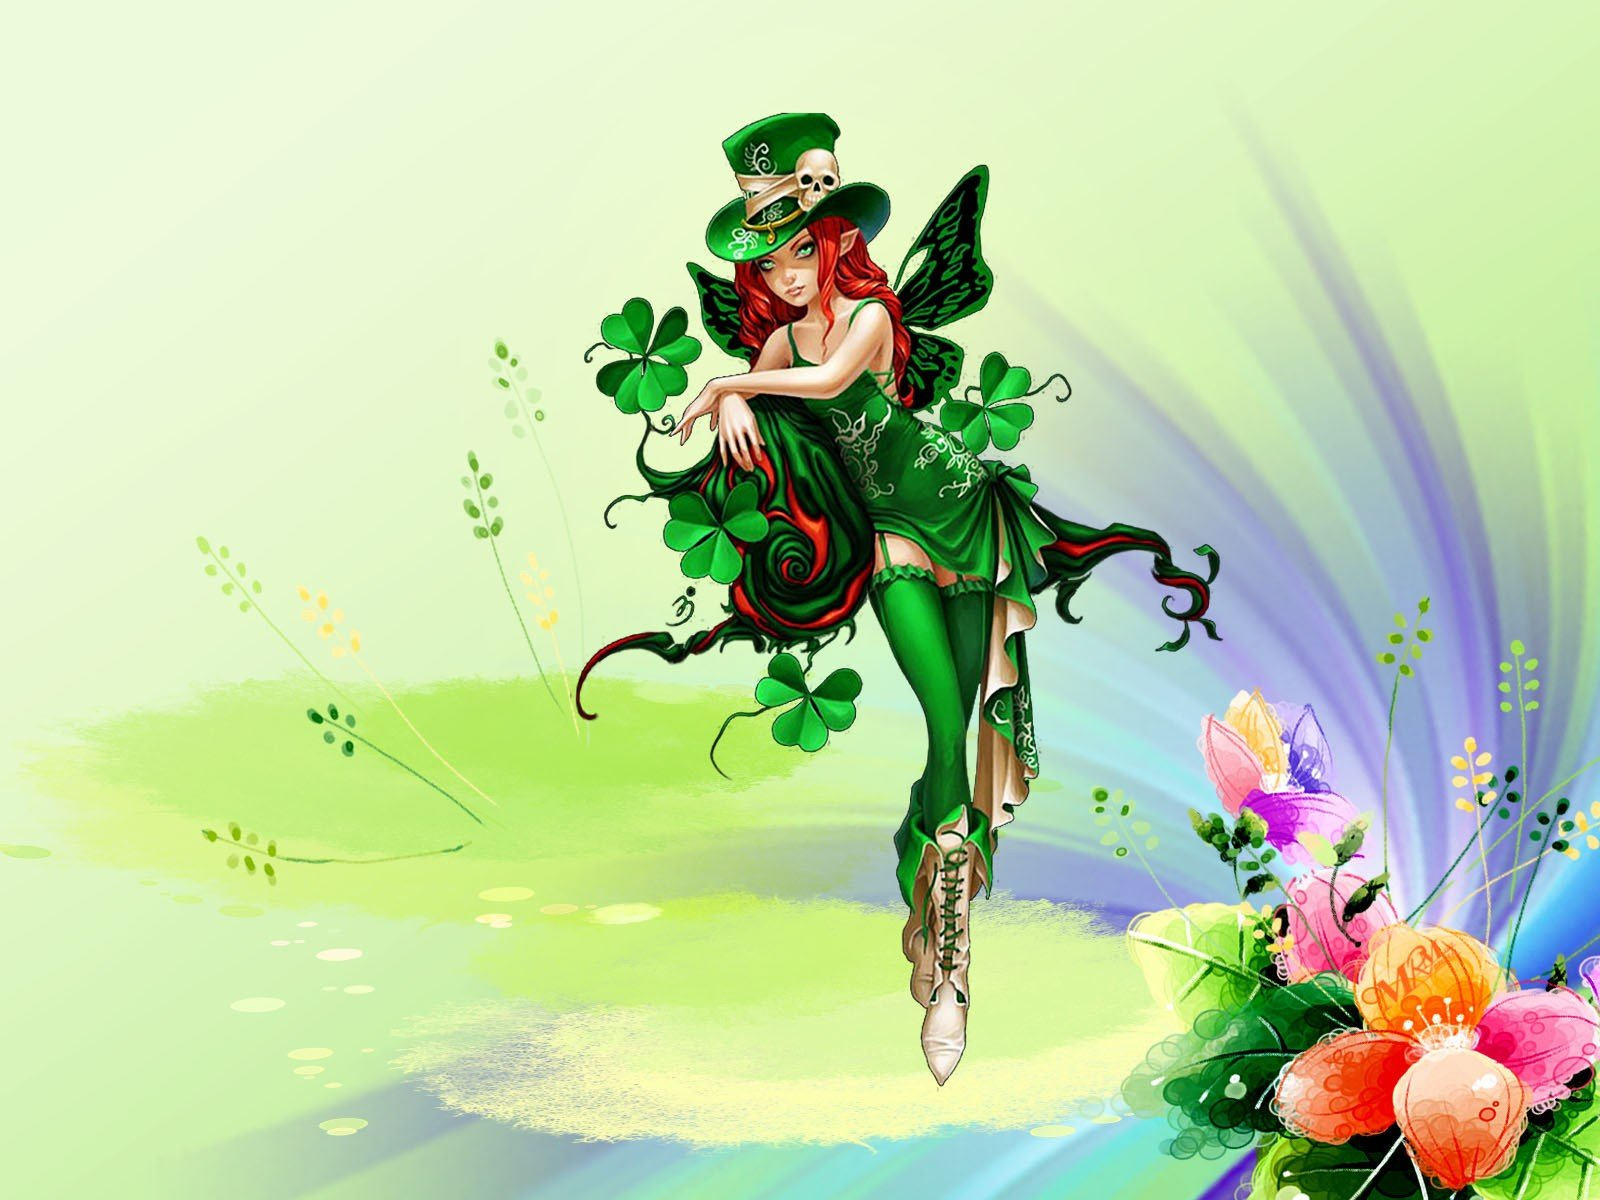 37 St. Patrick's Day HD Wallpapers | Backgrounds - Wallpaper Abyss